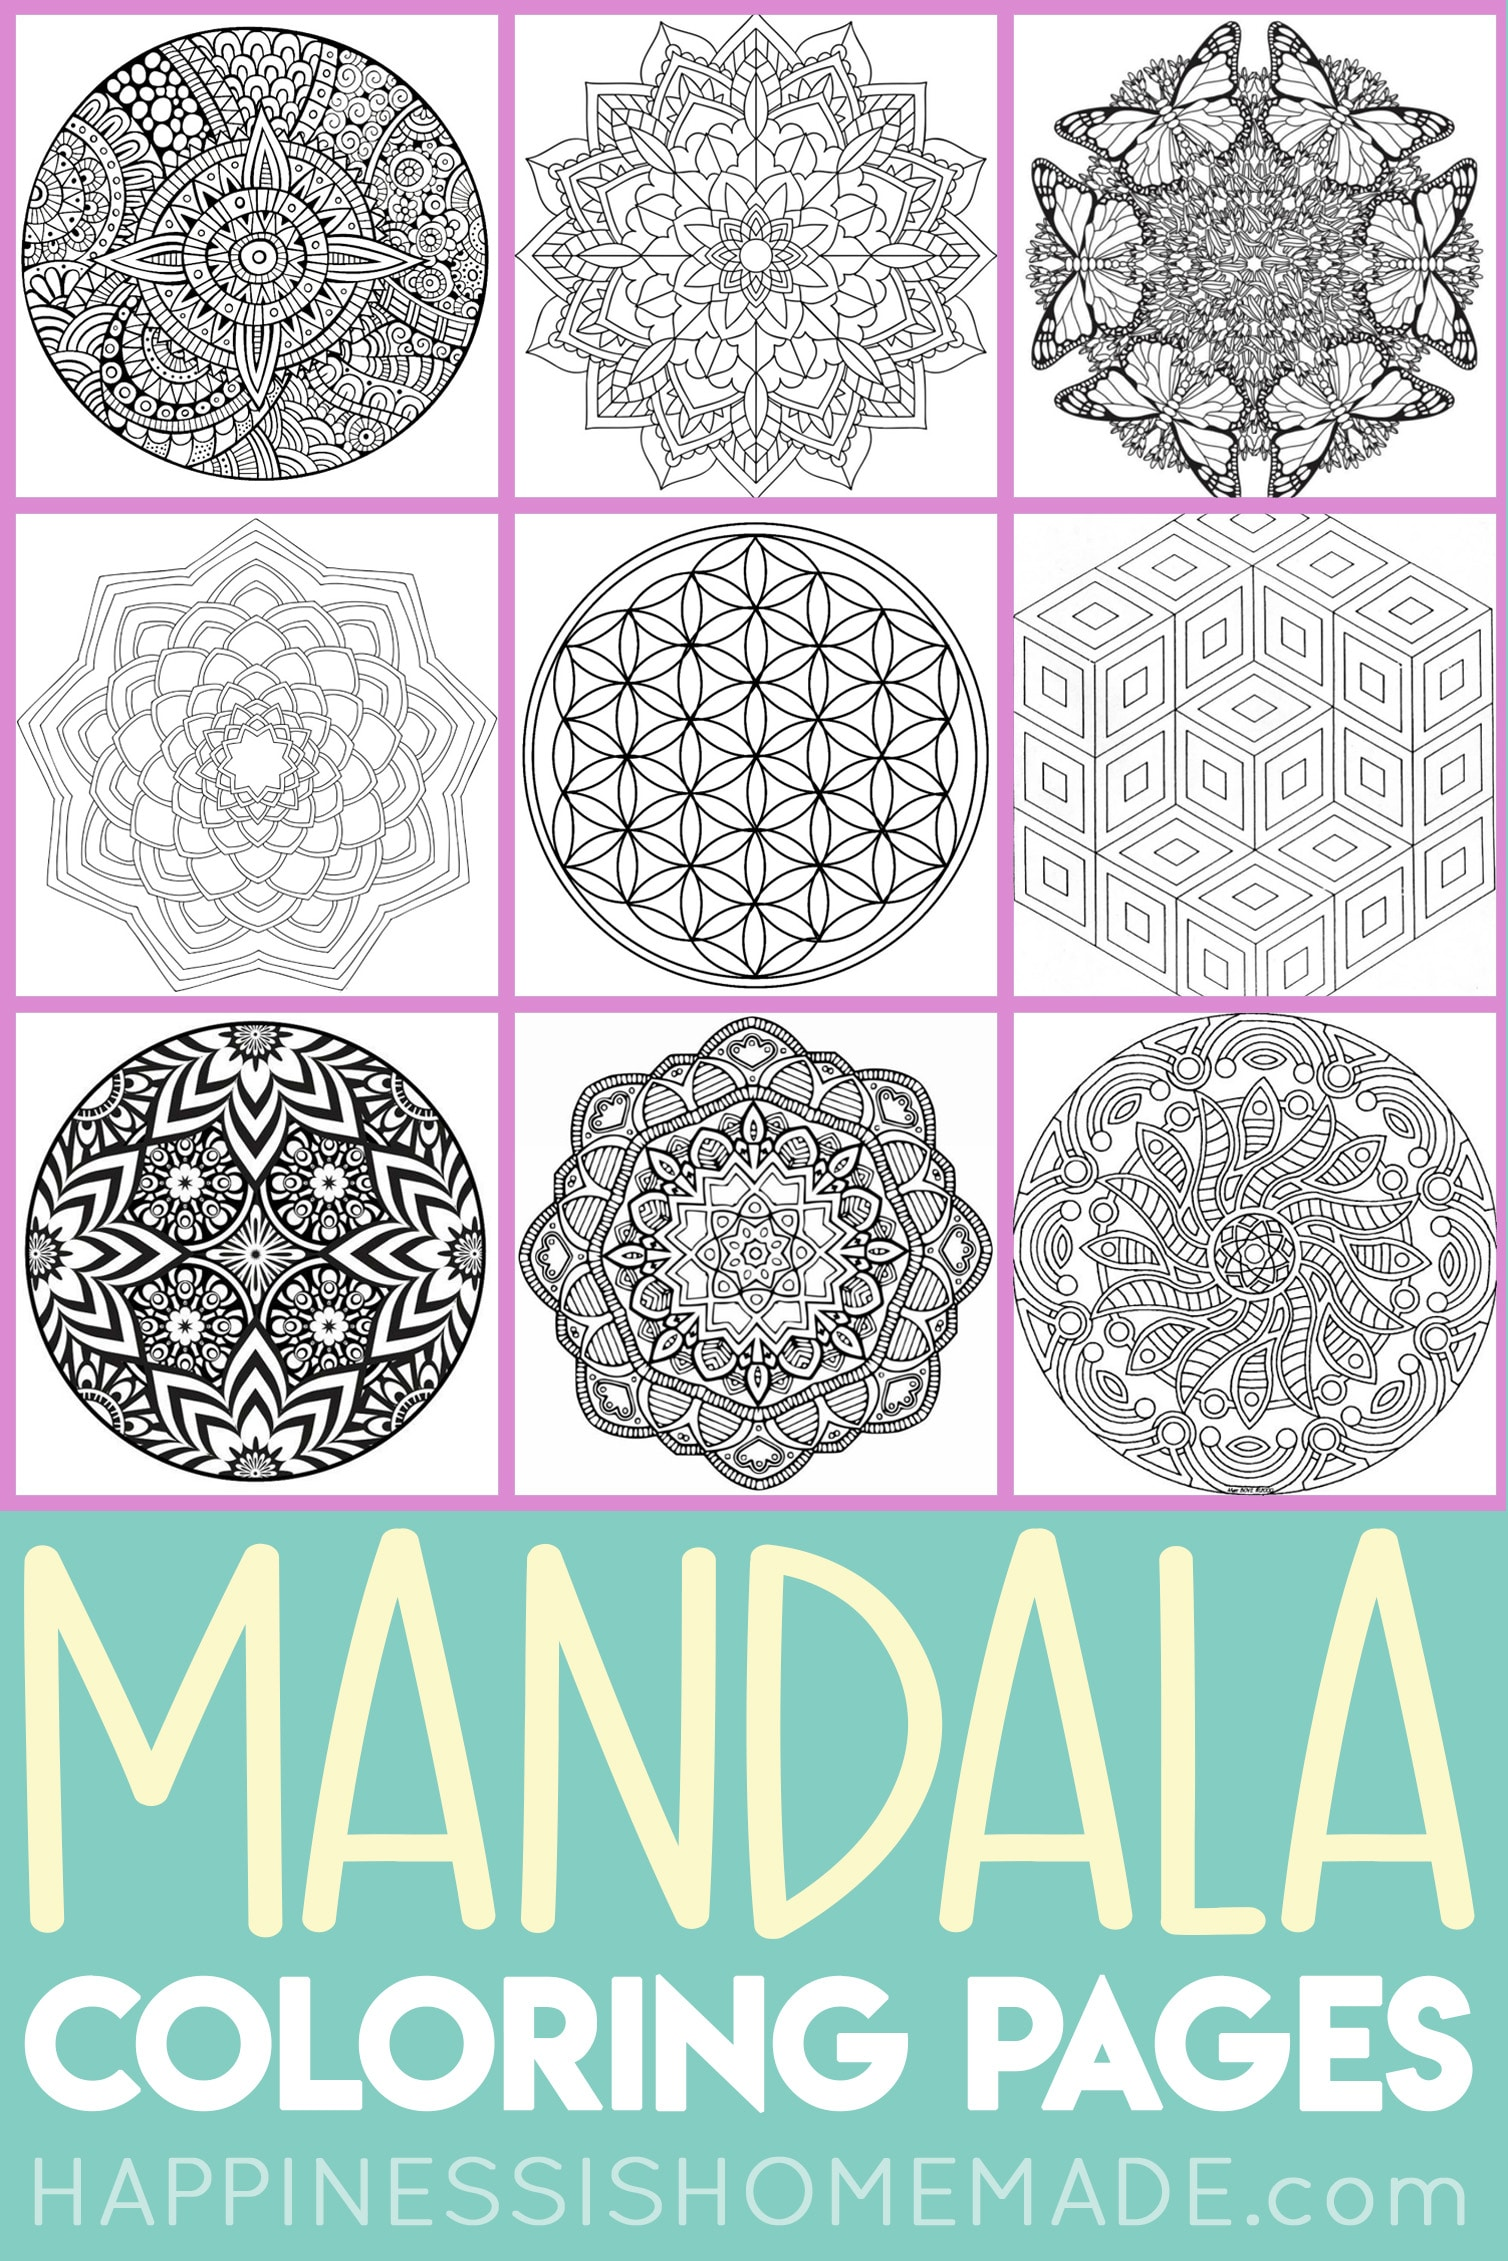 Mandala Coloring Pages For Adults Kids Happiness Is Homemade